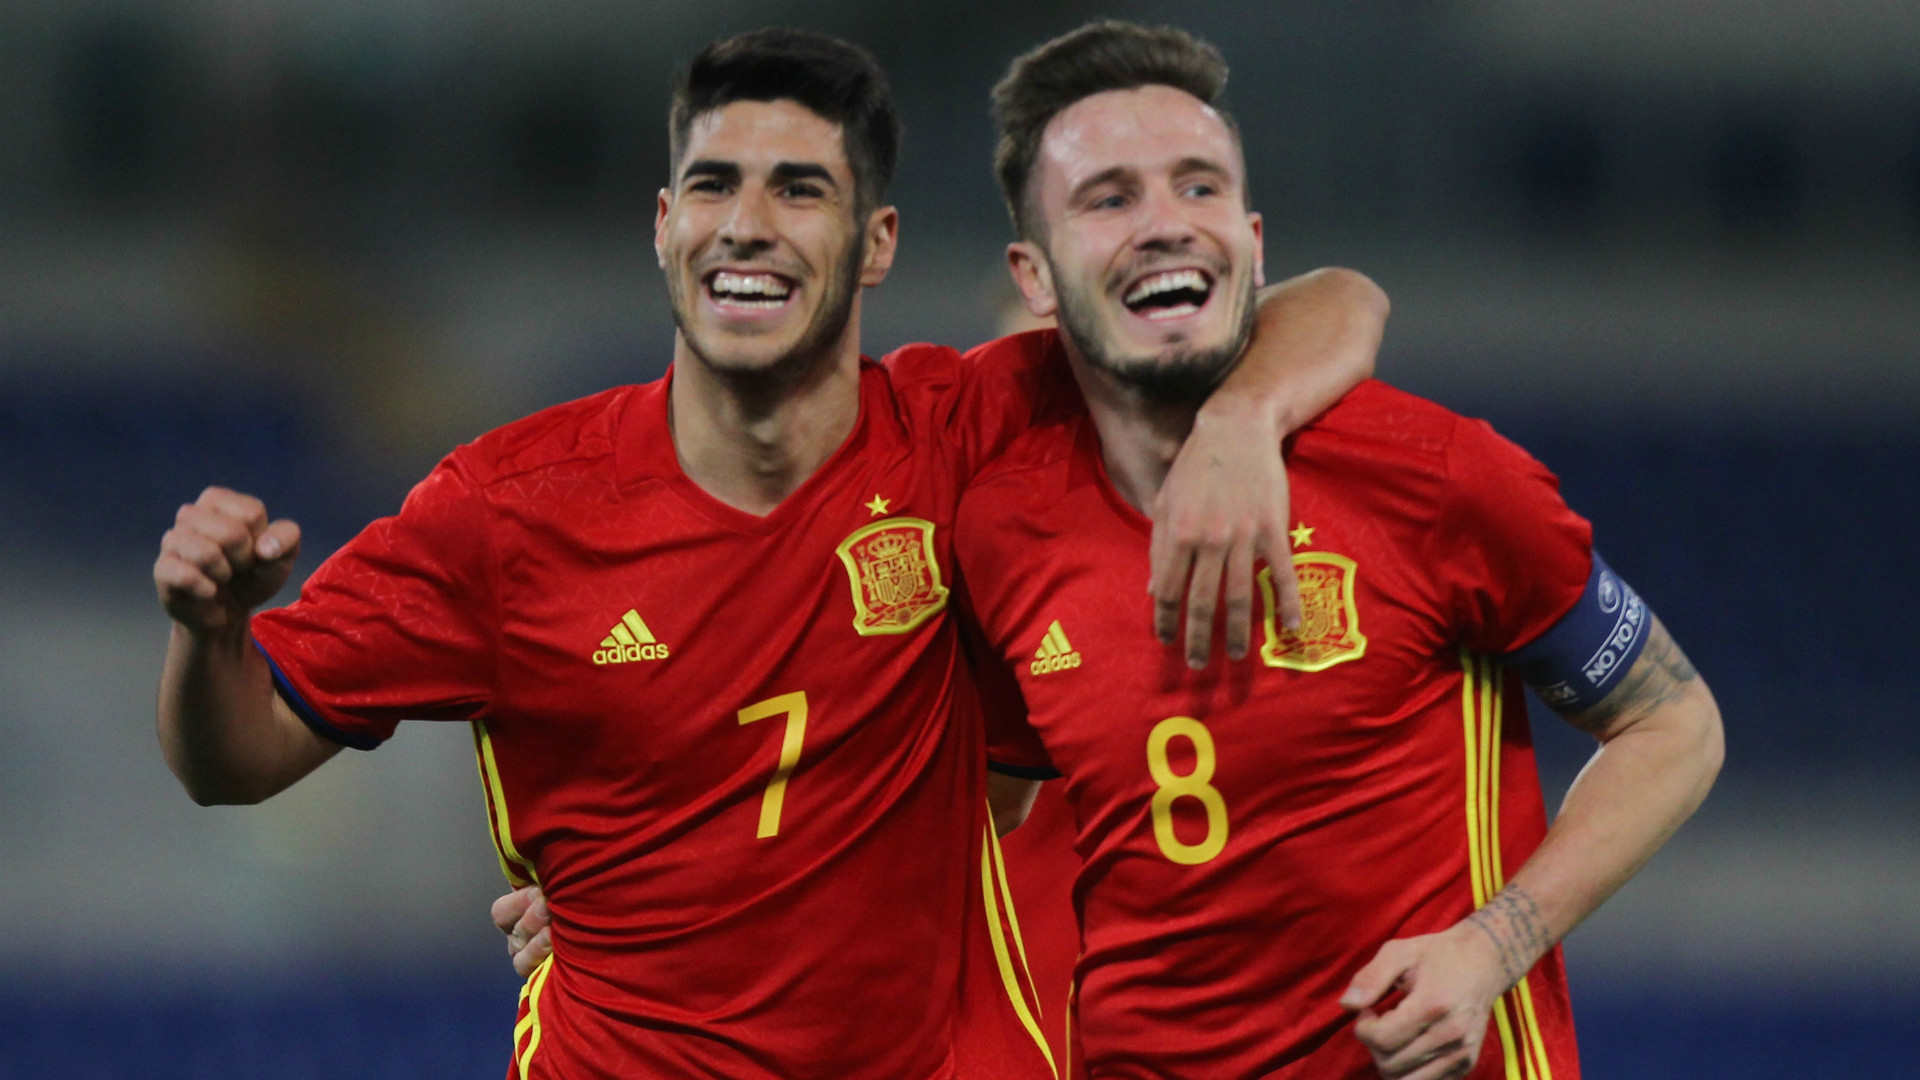 Marco Asensio: career of a young Spanish midfielder in Real Madrid and the Spanish national team 49